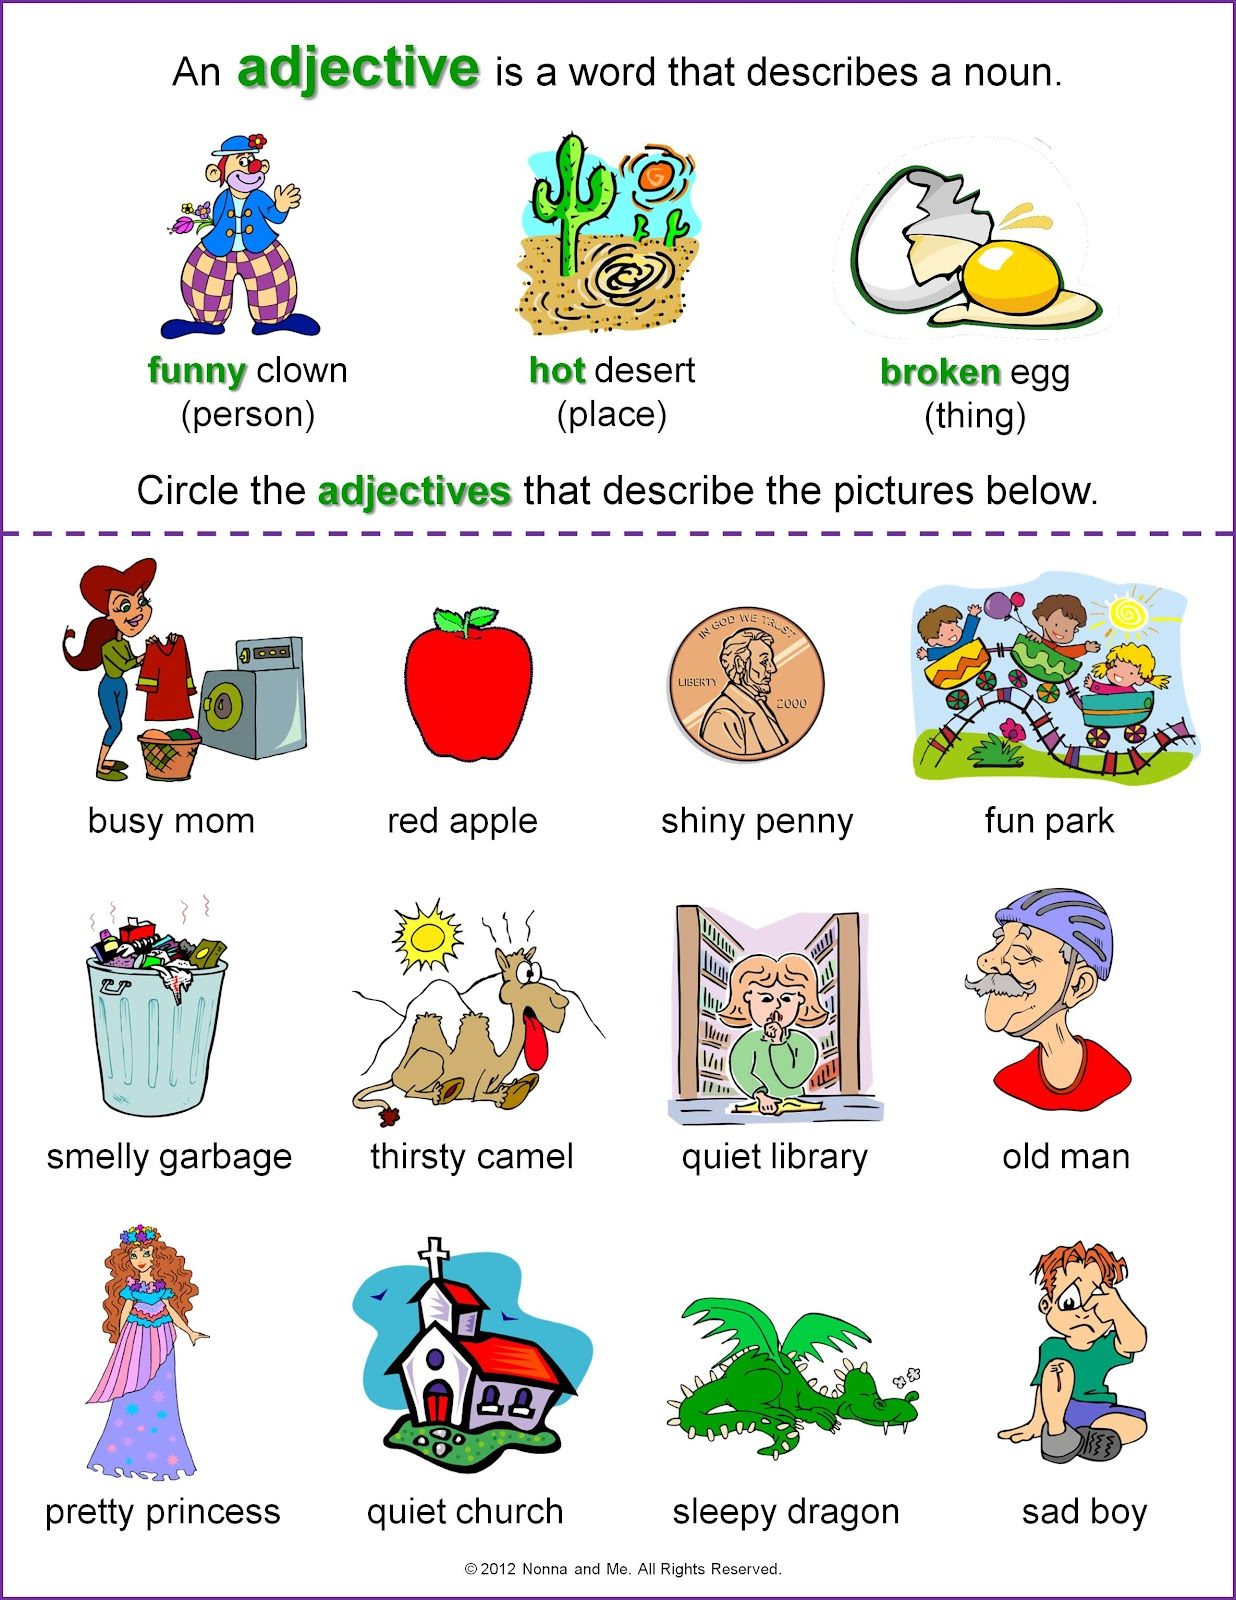 Worksheet Adjective Worksheet For Grade 1 adjectives worksheets for grade 1 imatei memarchoapraga